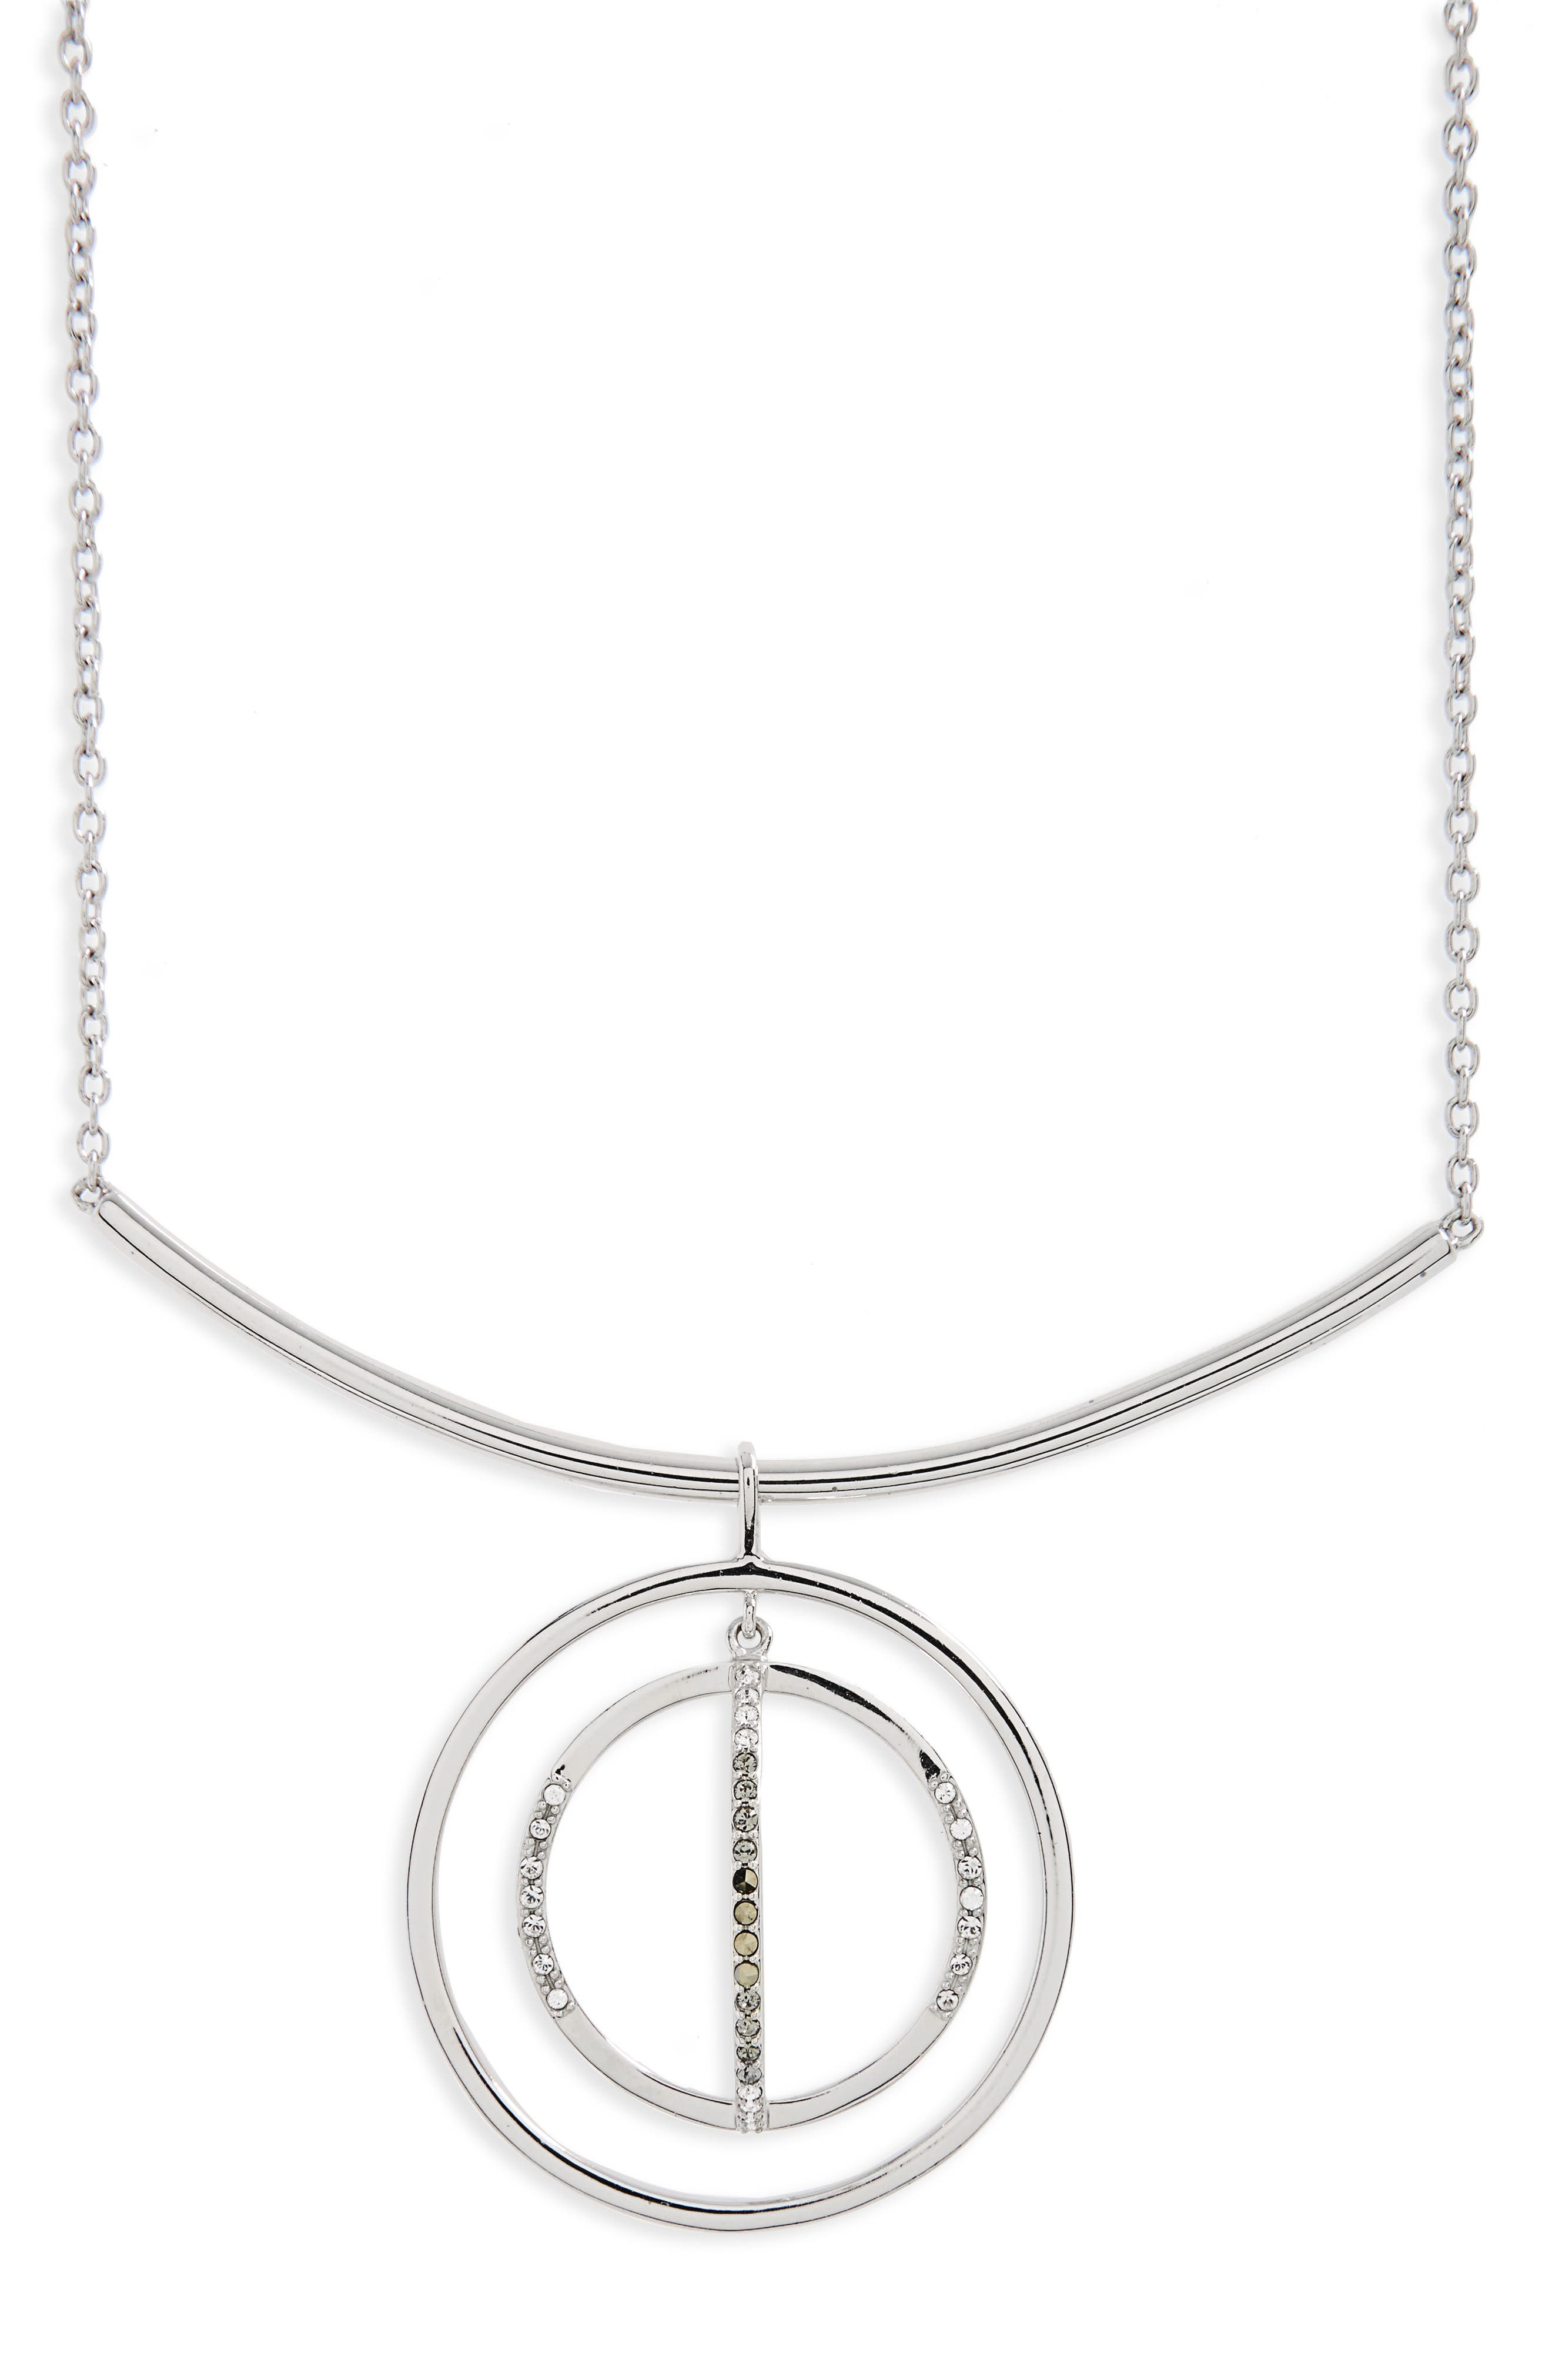 Alternate Image 1 Selected - Judith Jack Silver Sparkle Circle Pendant Necklace